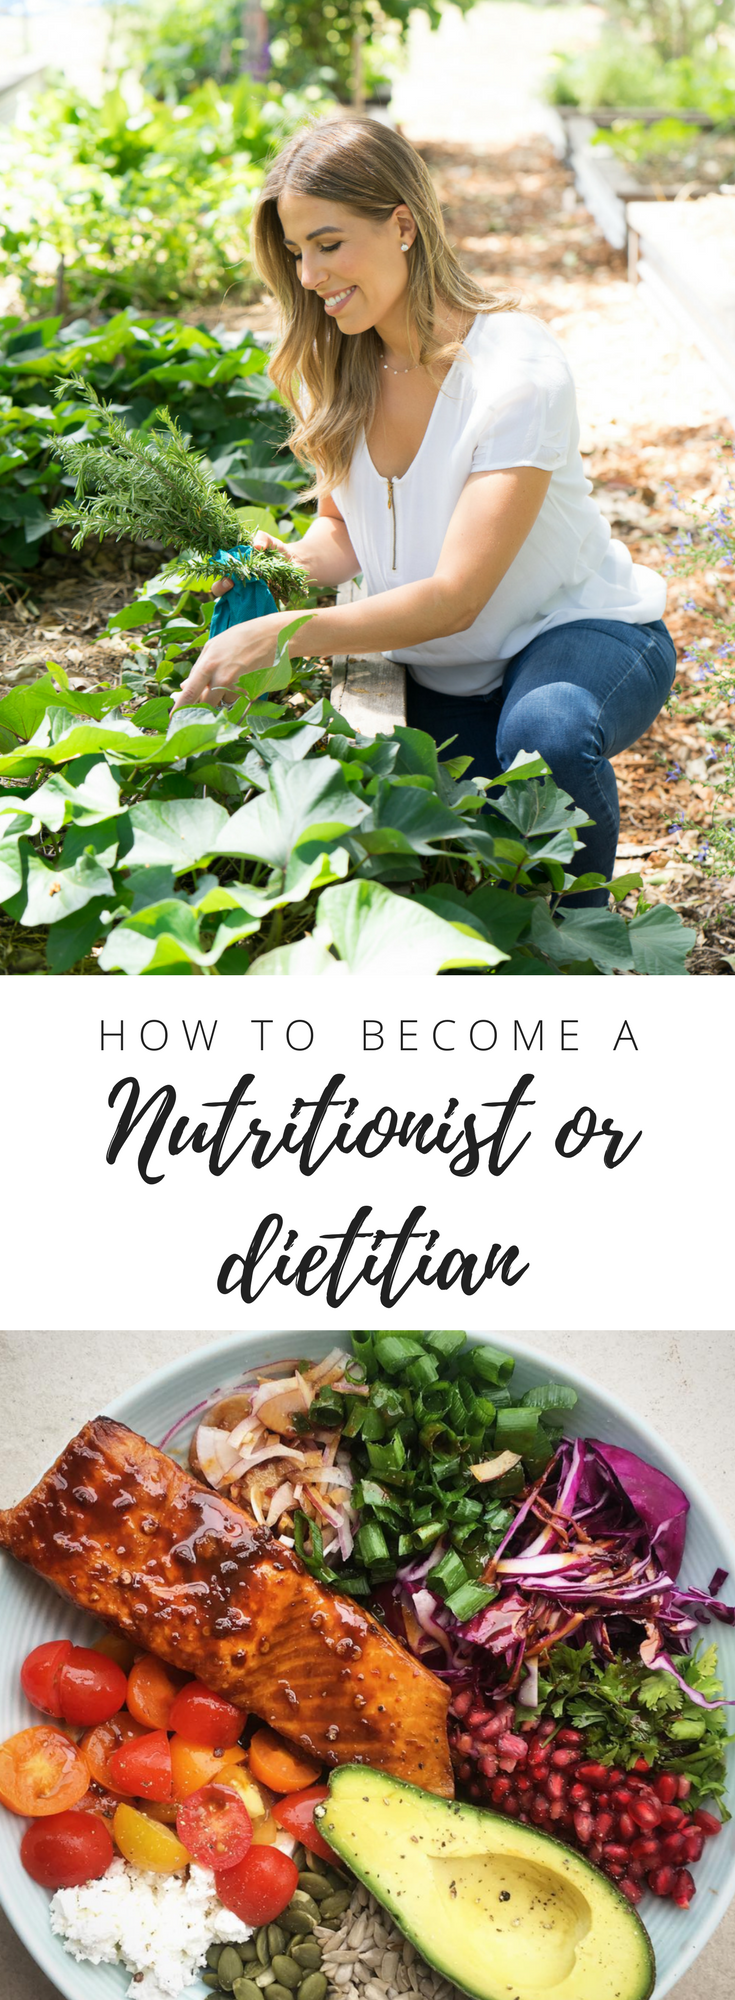 nutritionist or dietitian